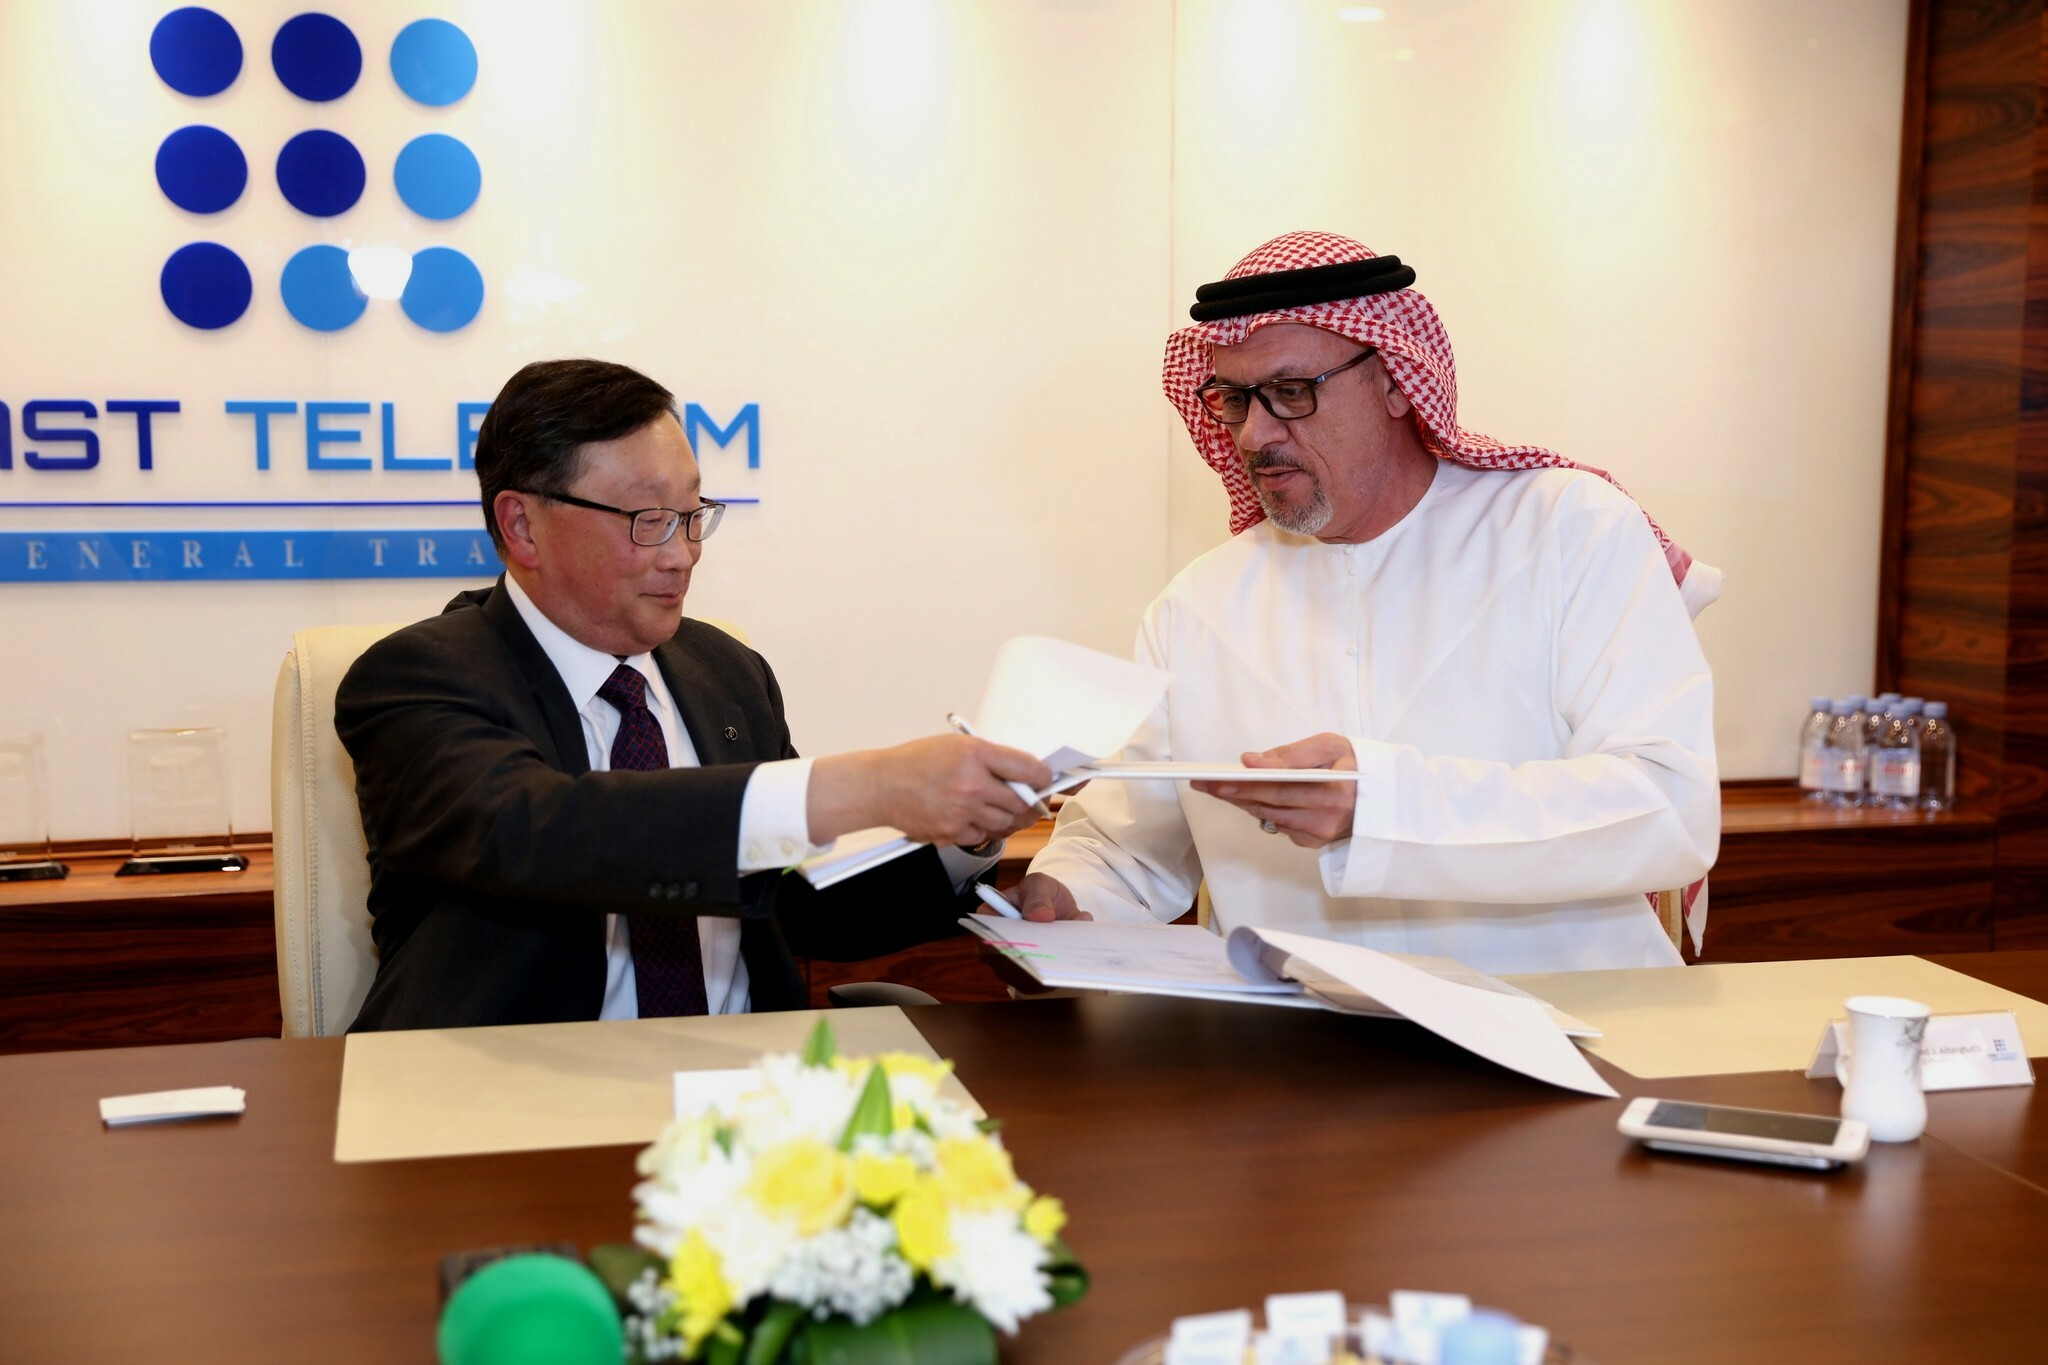 BlackBerry and Fast Telecom sign distribution agreement